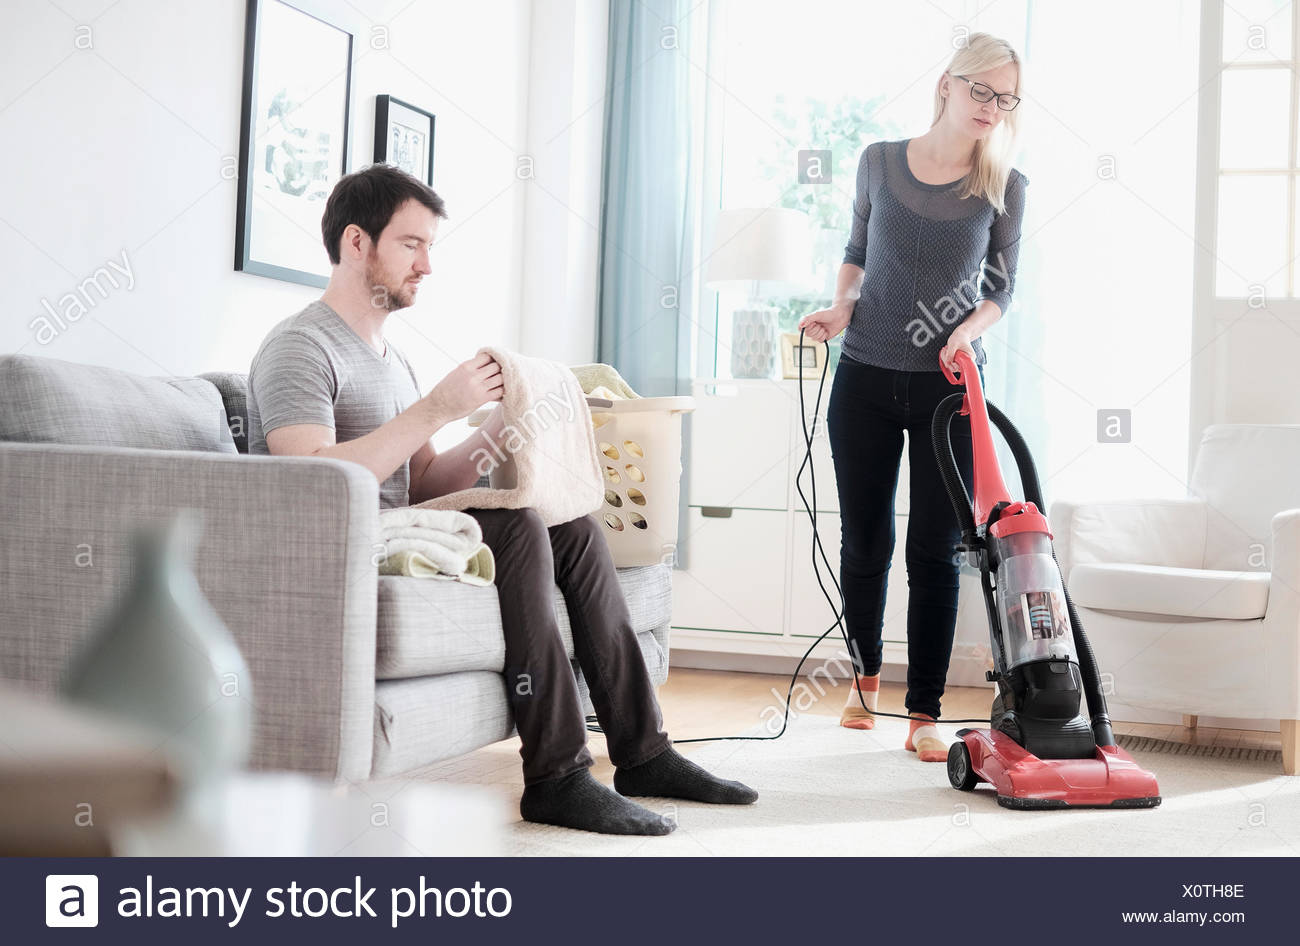 Couple cleaning living room - Stock Image